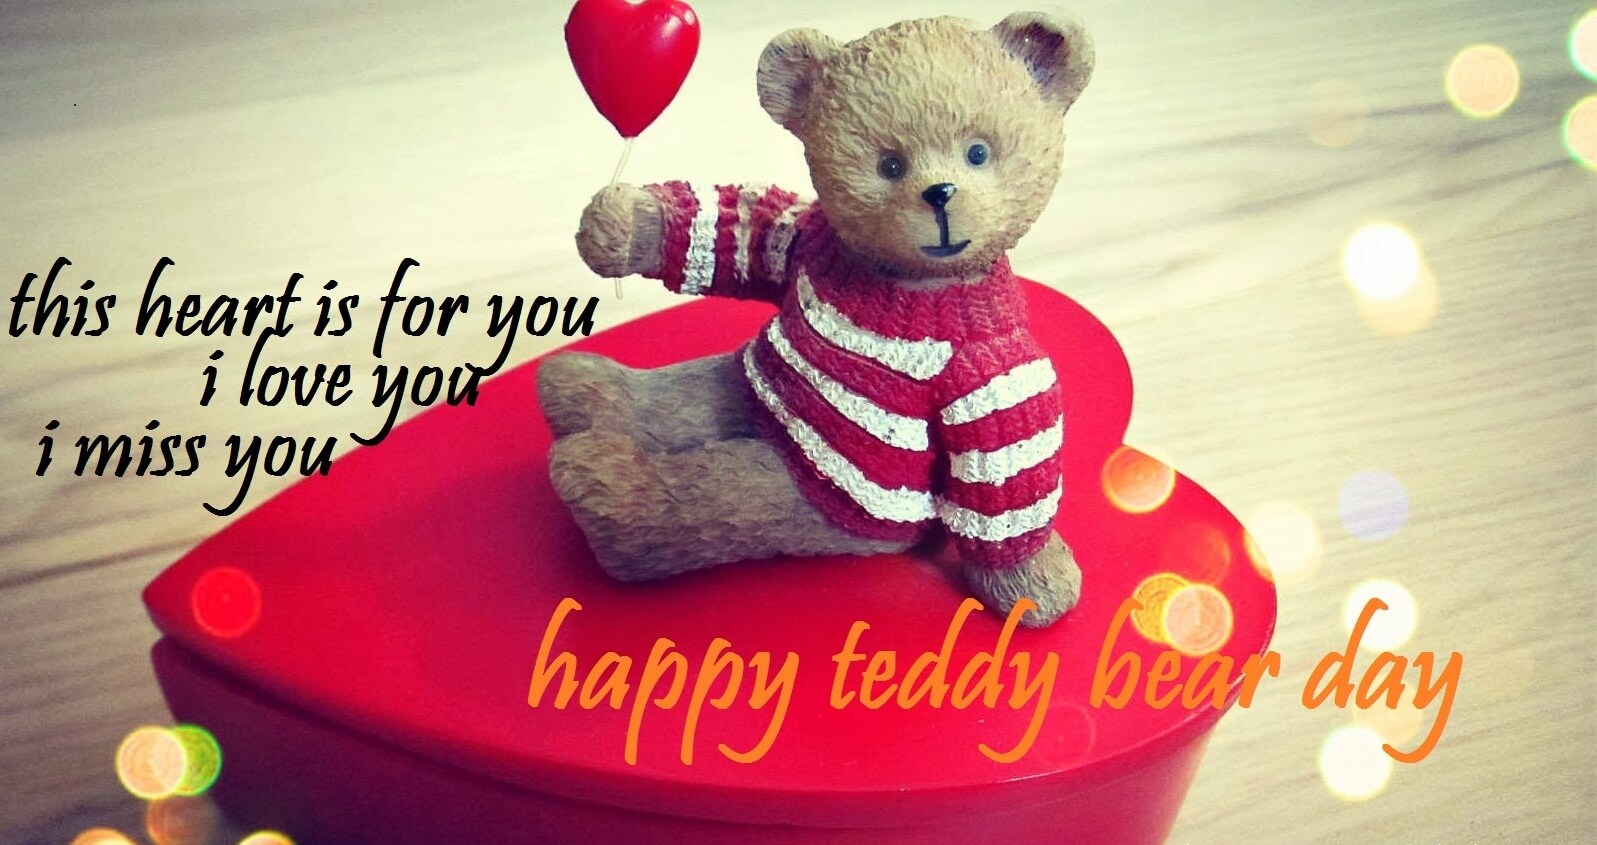 happy teddy day wishes bear love miss you image facebook hd wallpaper